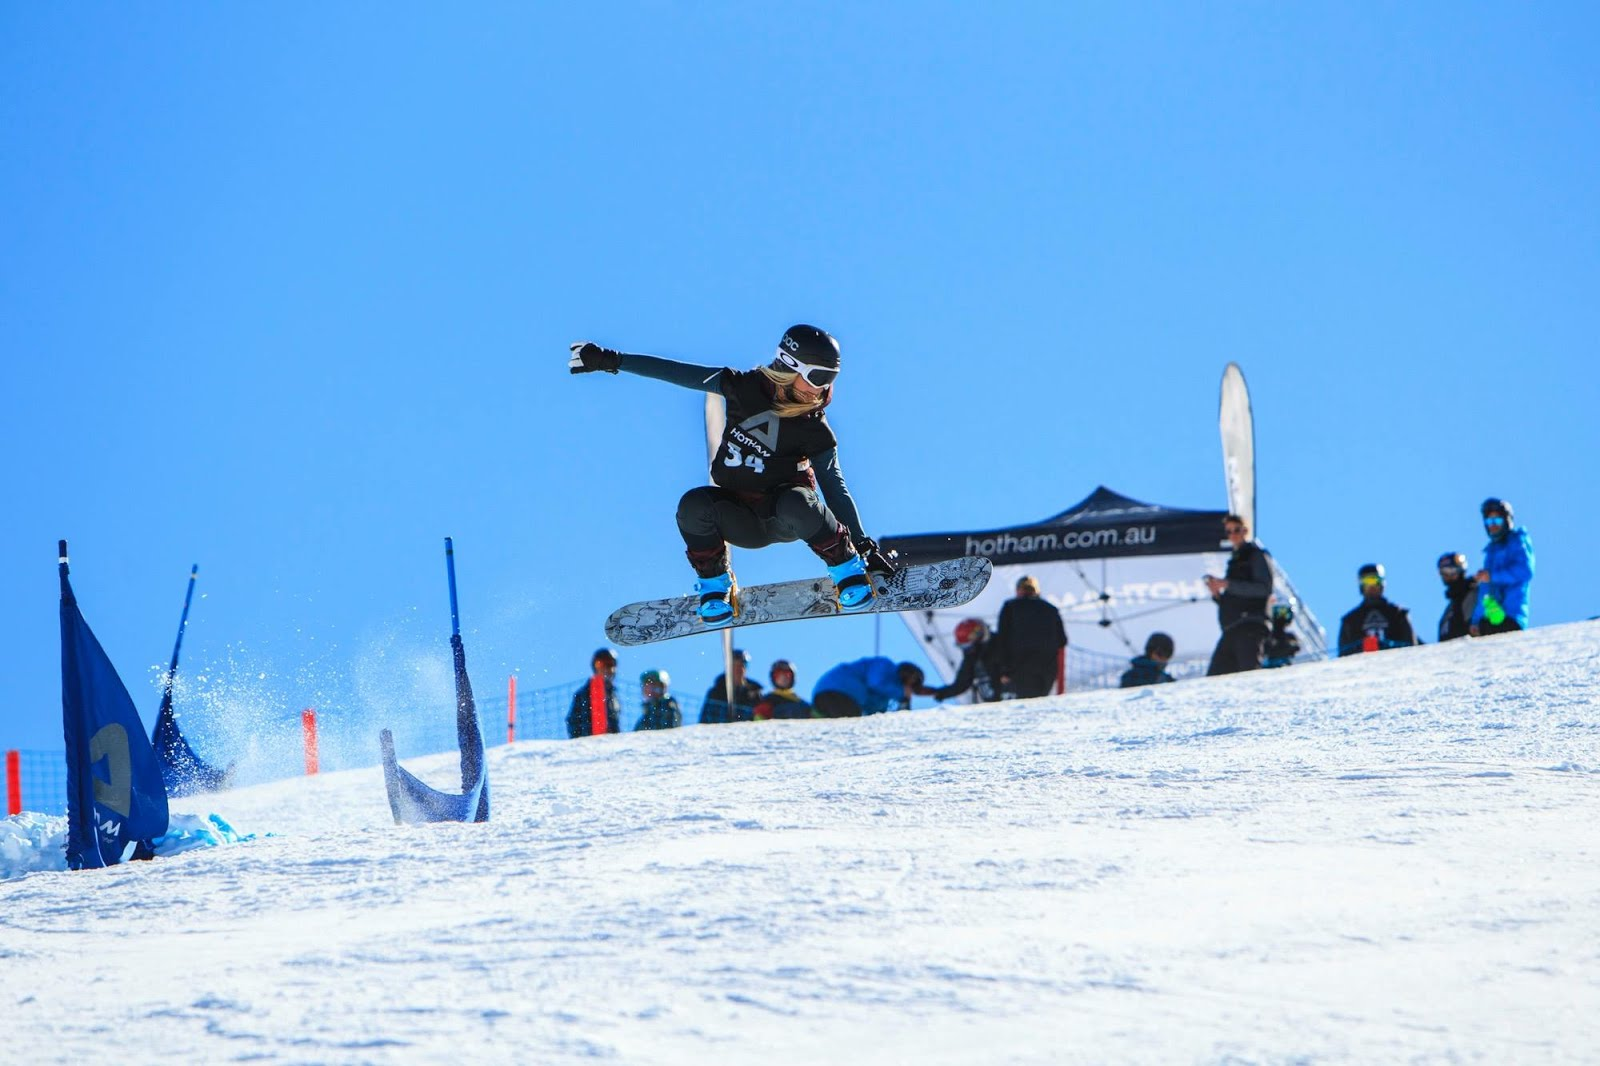 Banked Slalom In Australia having some fun